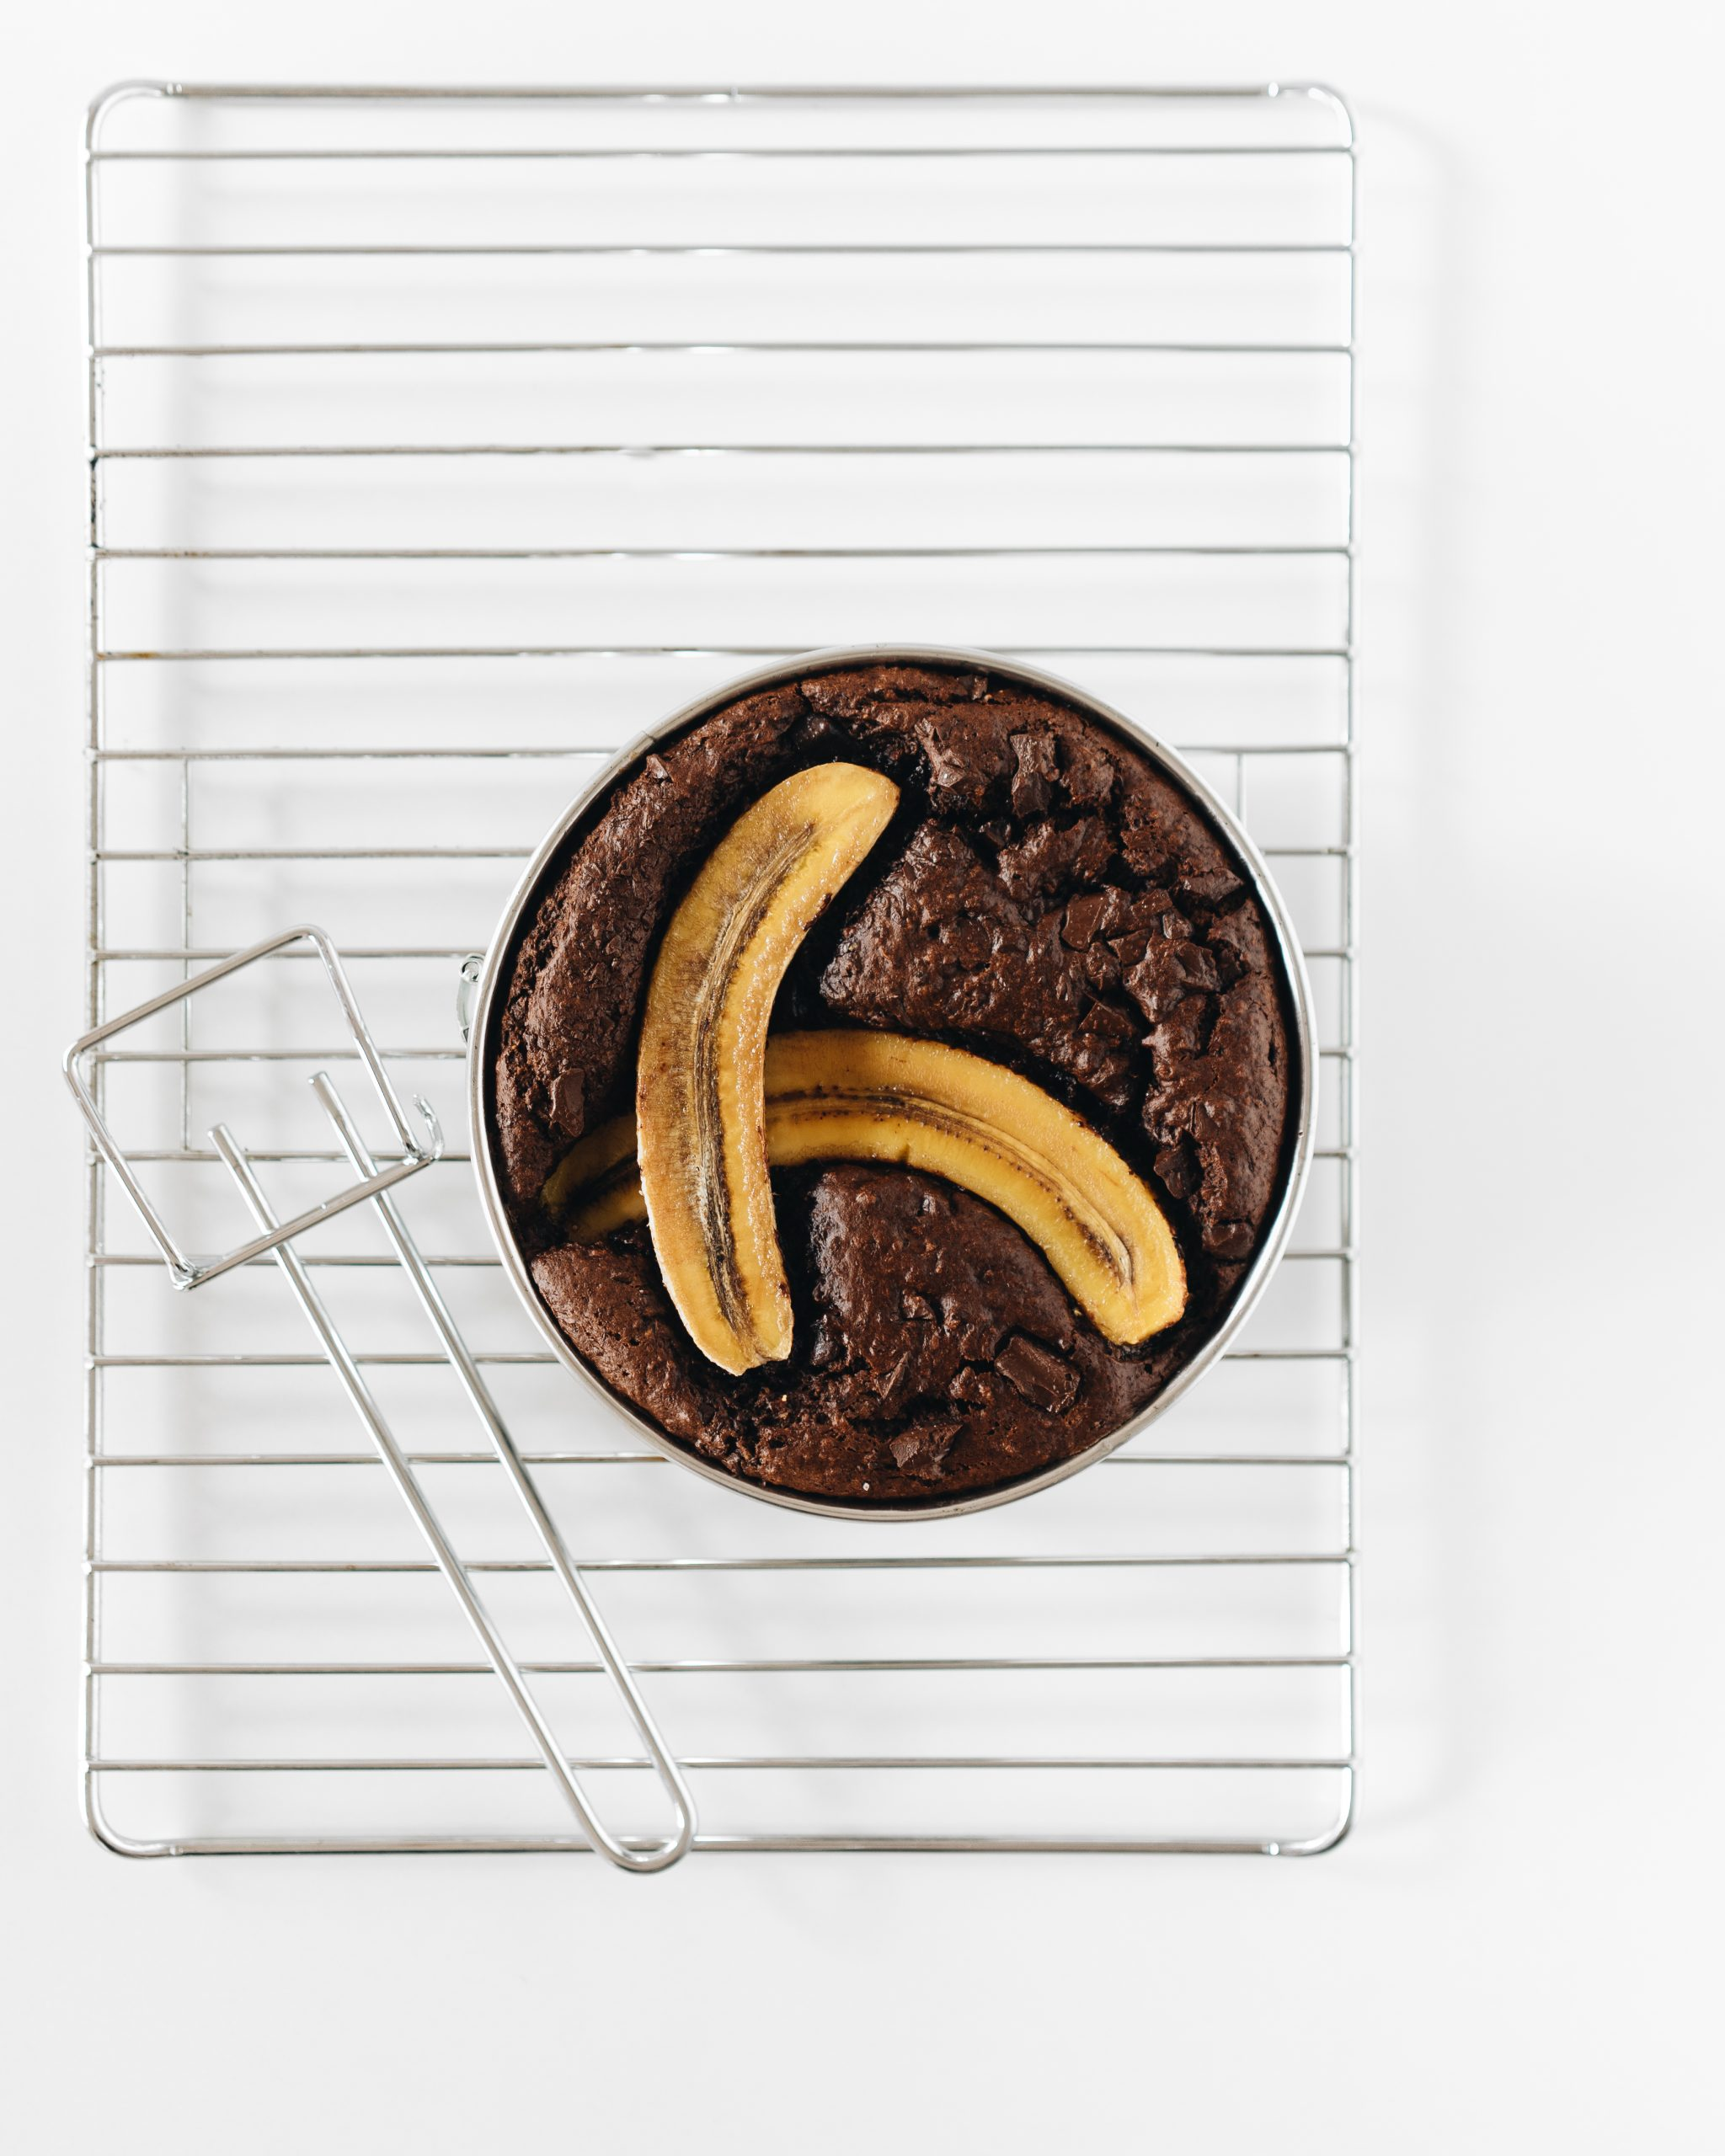 Banana bread vegano con chocolate